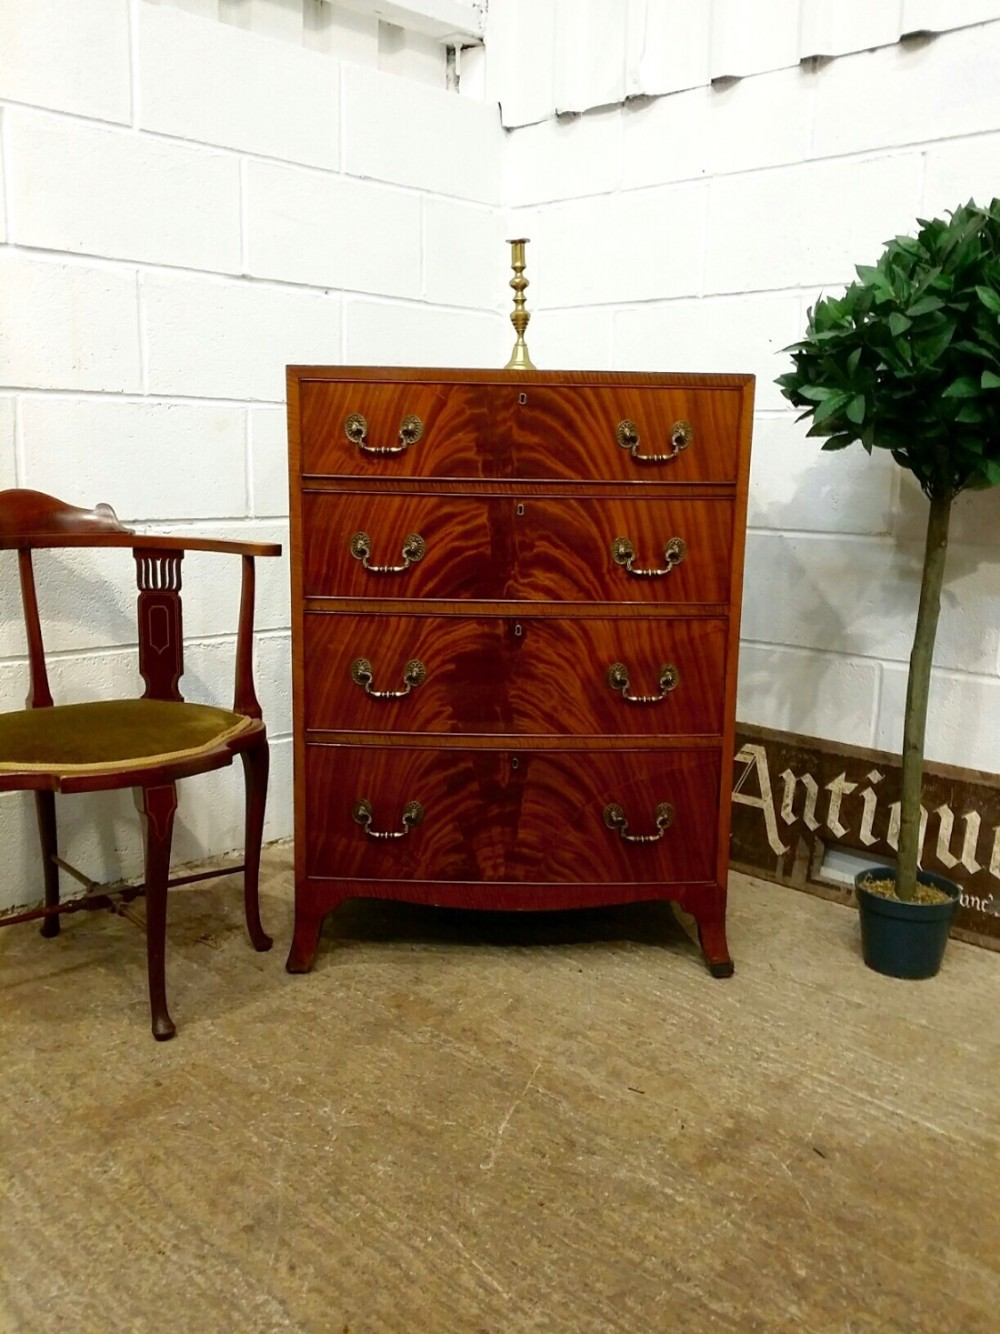 antique edwardian flamed mahogany bow front chest of drawers c1900